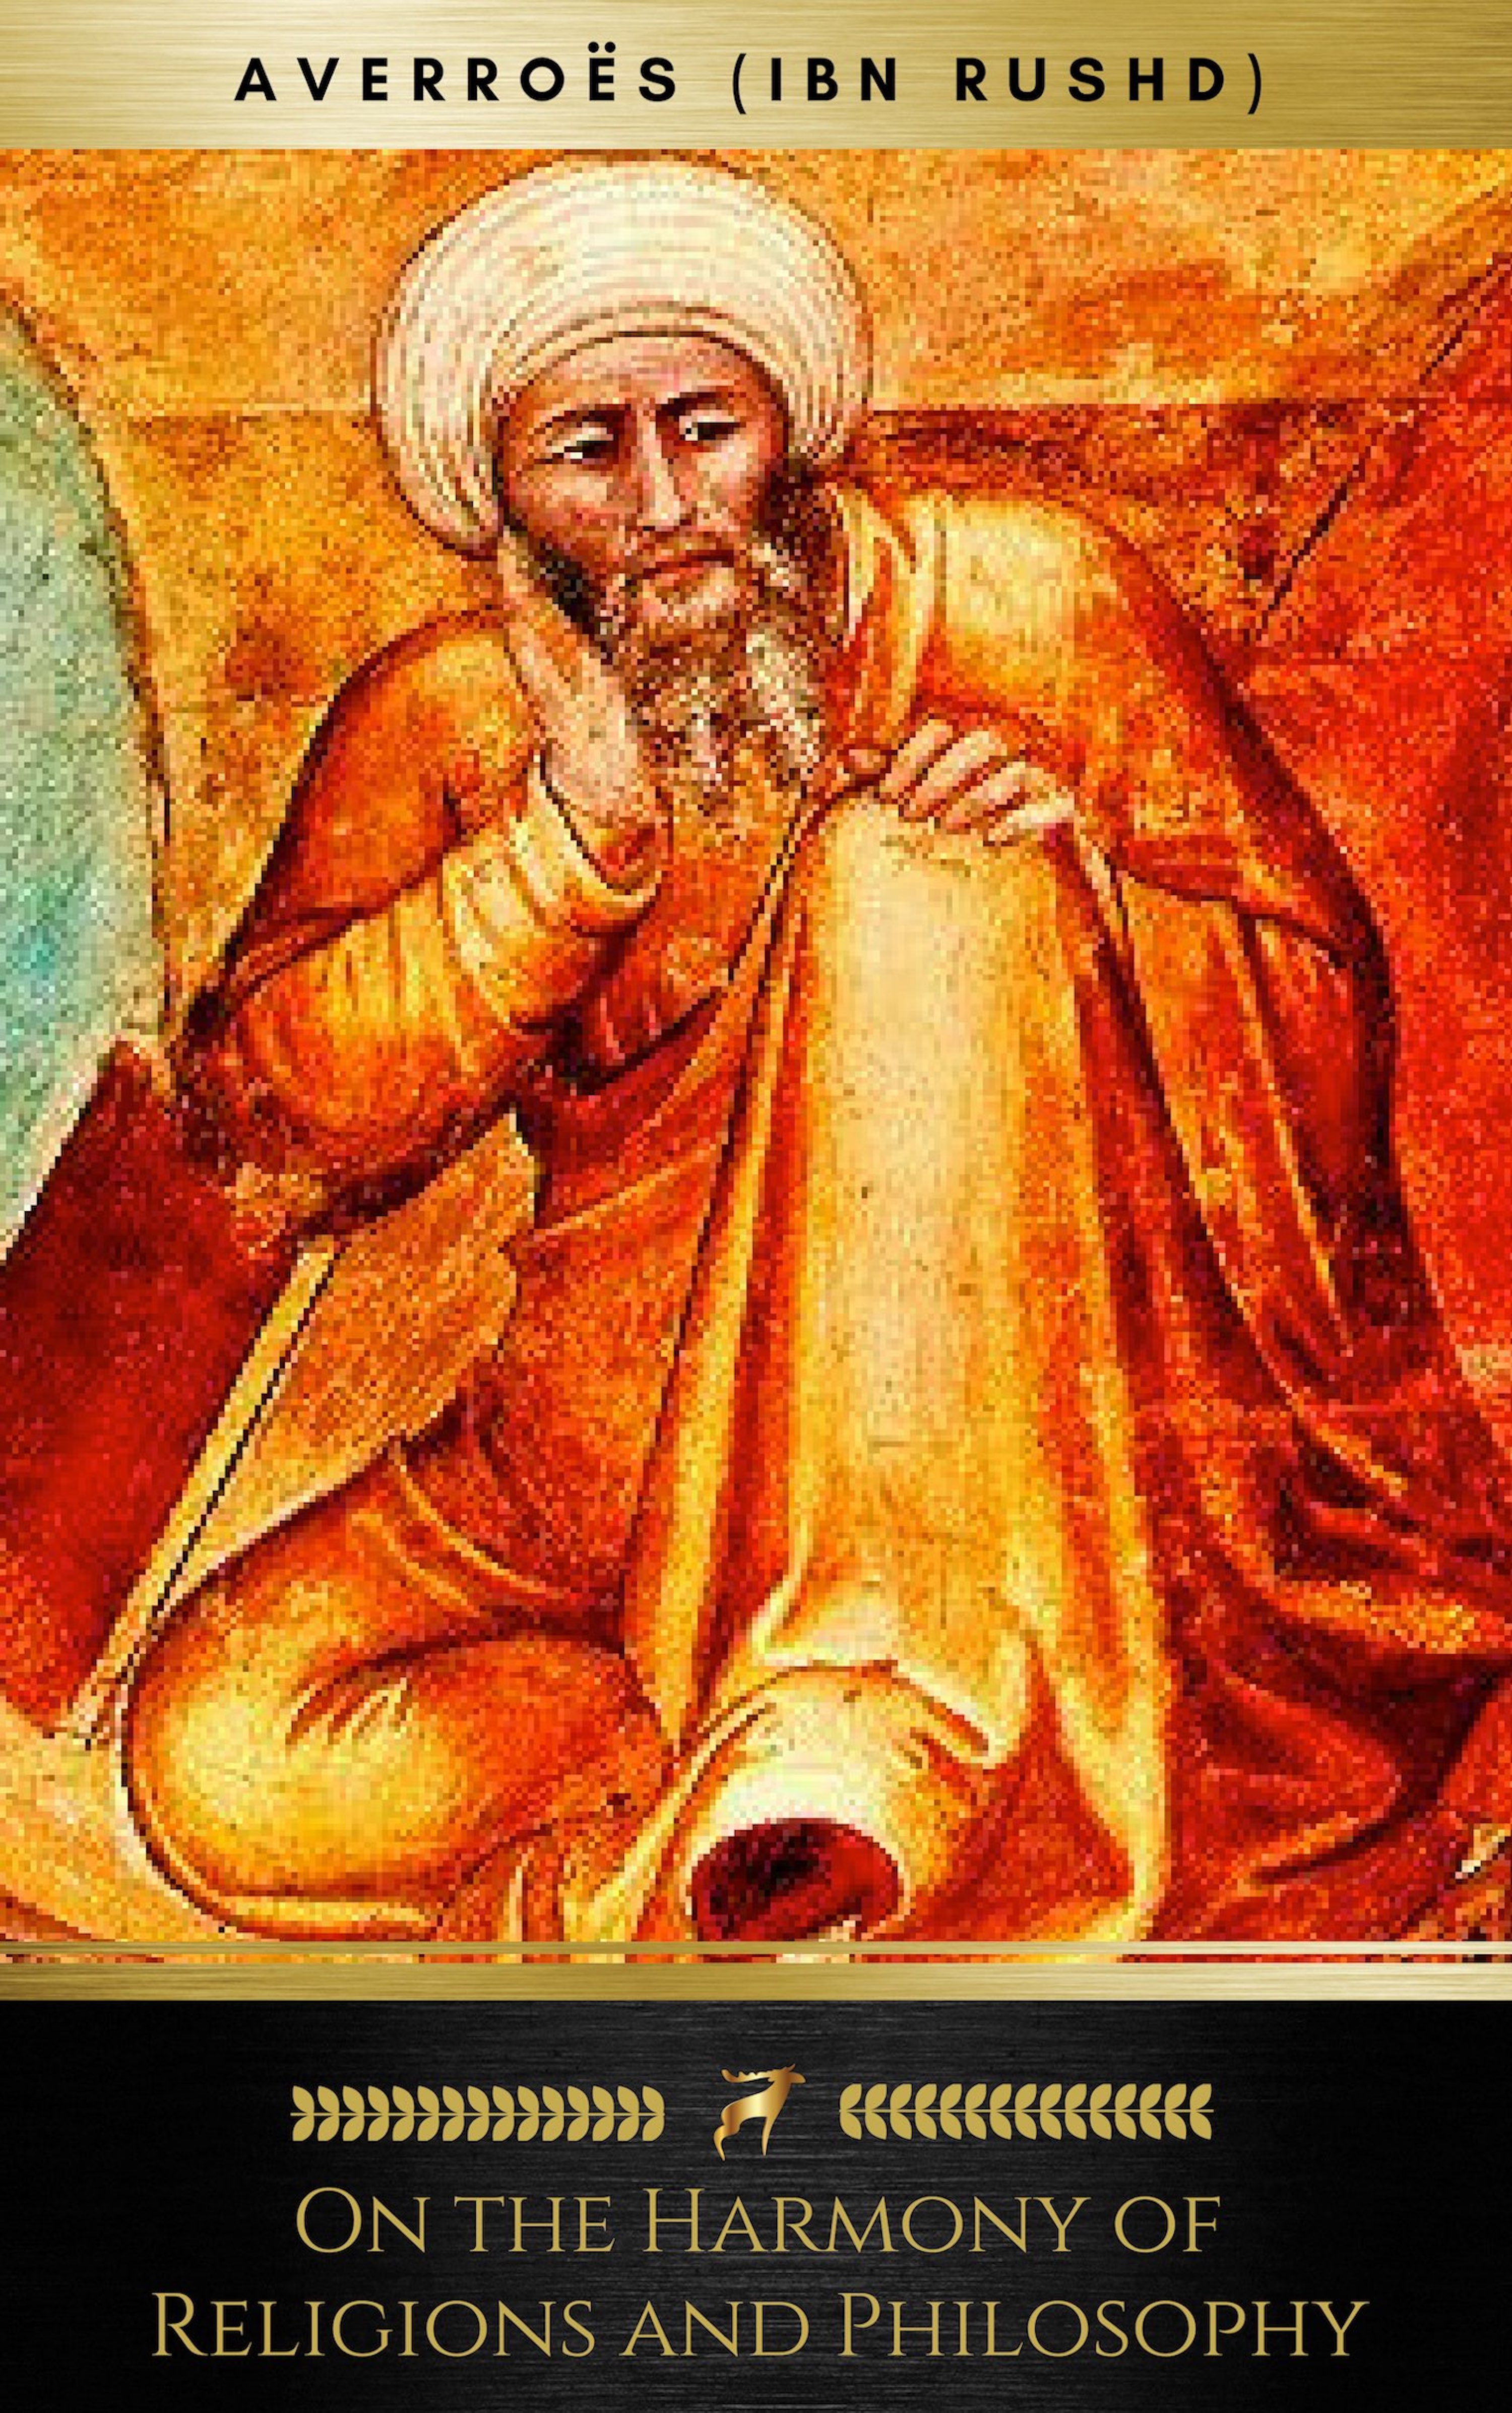 Ibn Rushd On the Harmony of Religions and Philosophy (Golden Deer Classics)